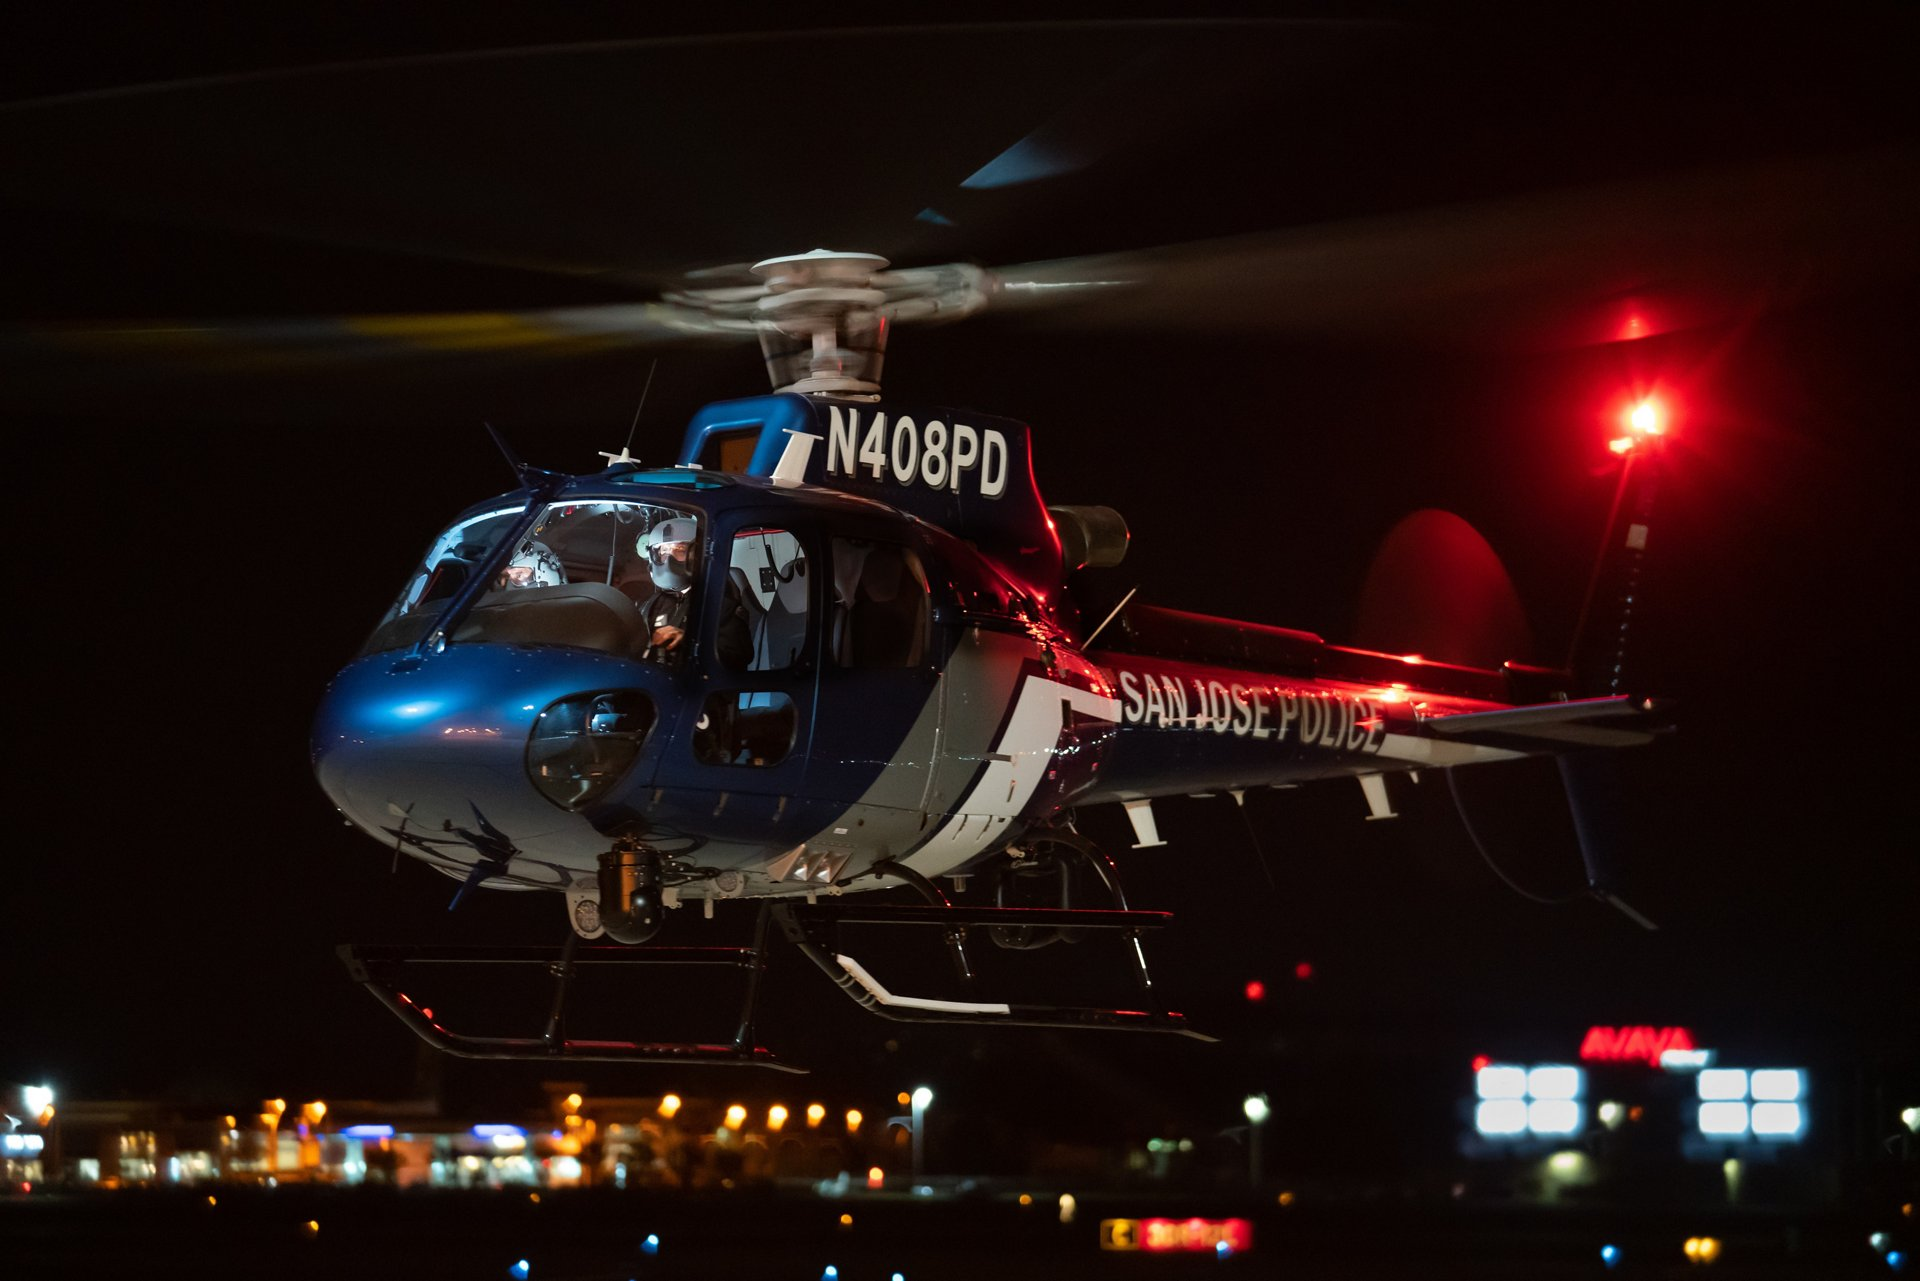 The San Jose Police Department鈥檚 new H125 comes